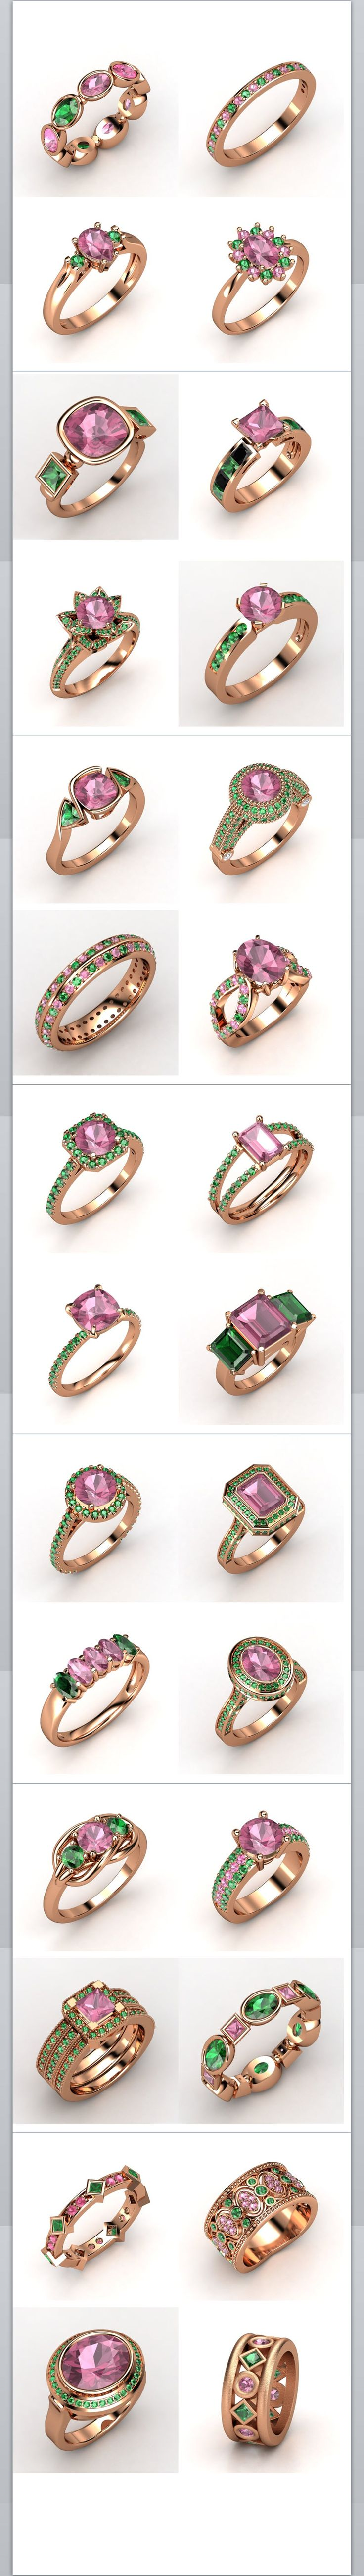 Pink and green gemstone rings w/ rose gold settings